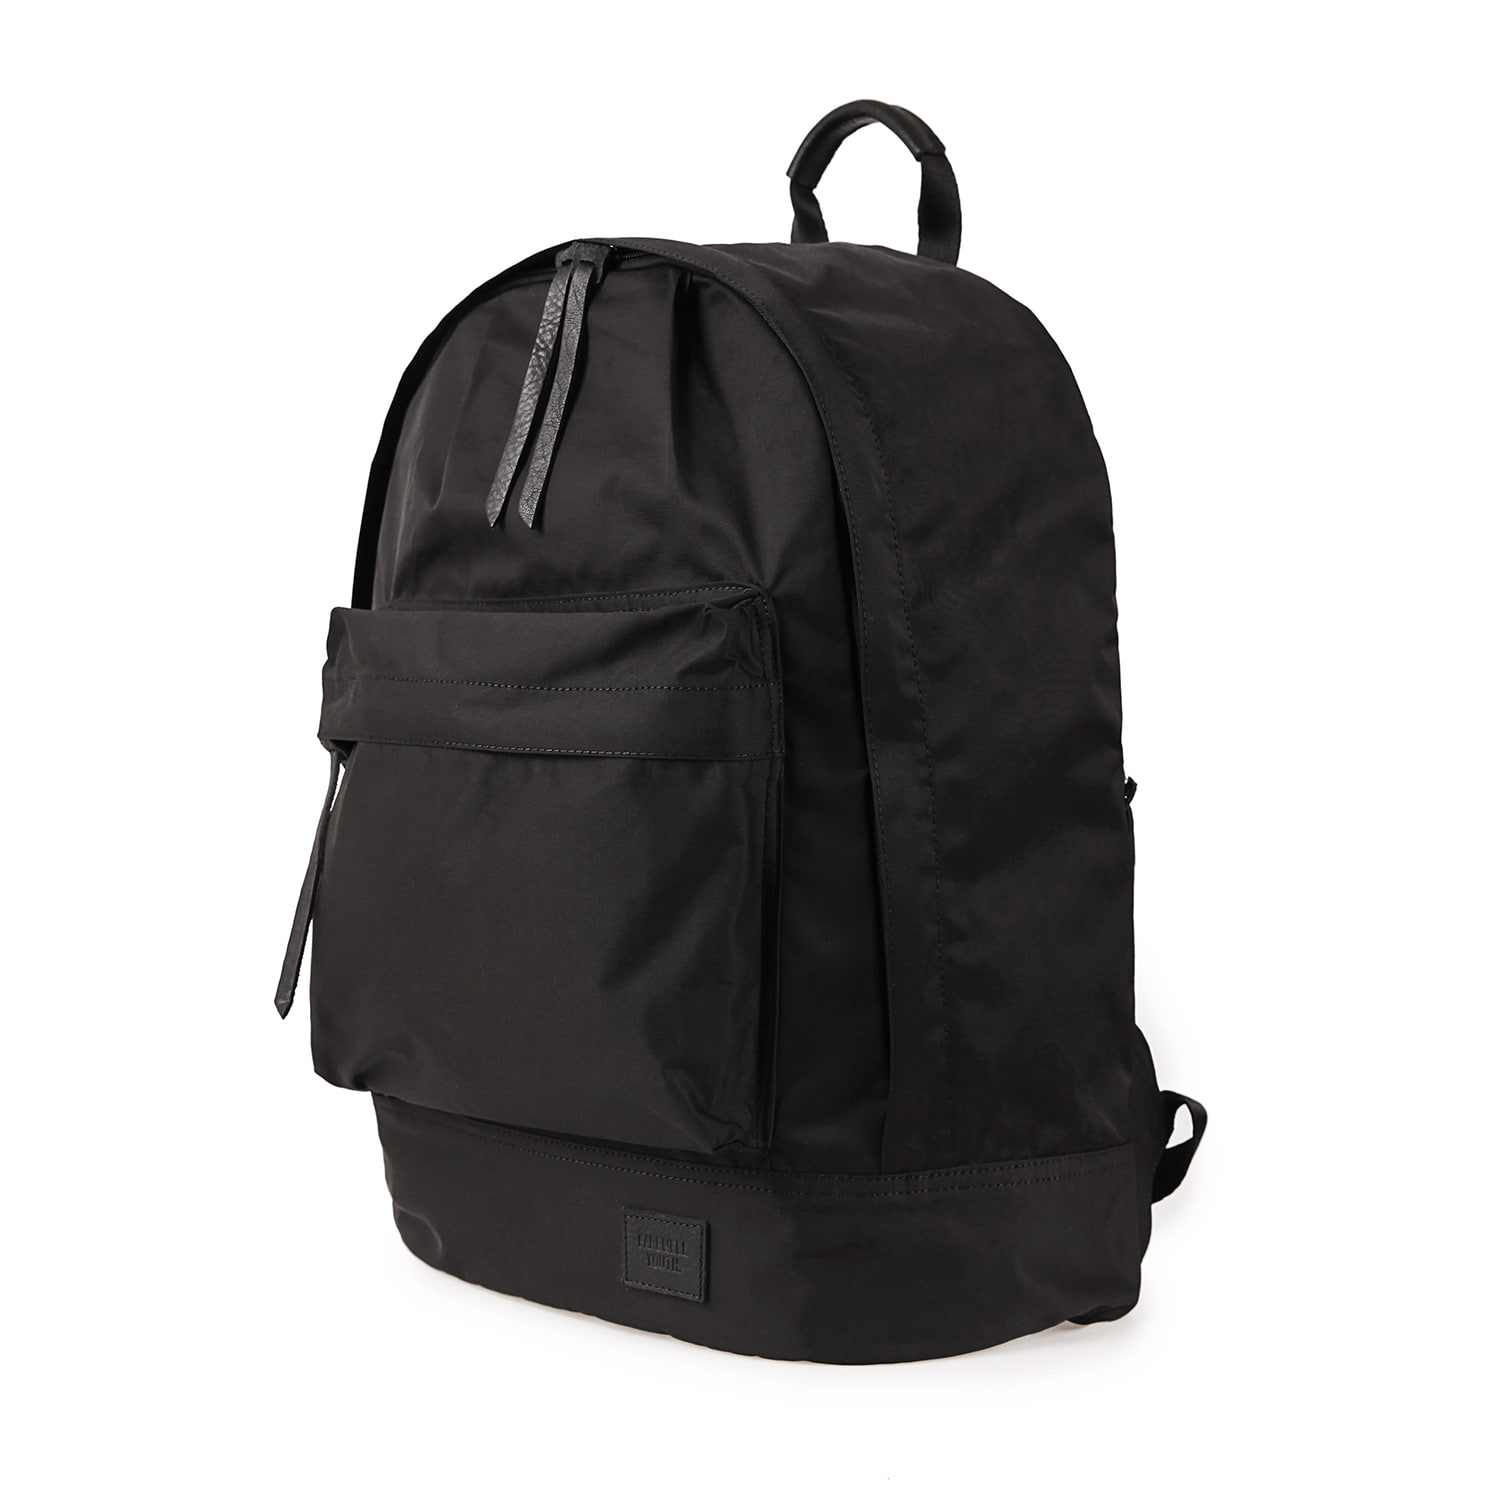 Memorial Backpack (Black)